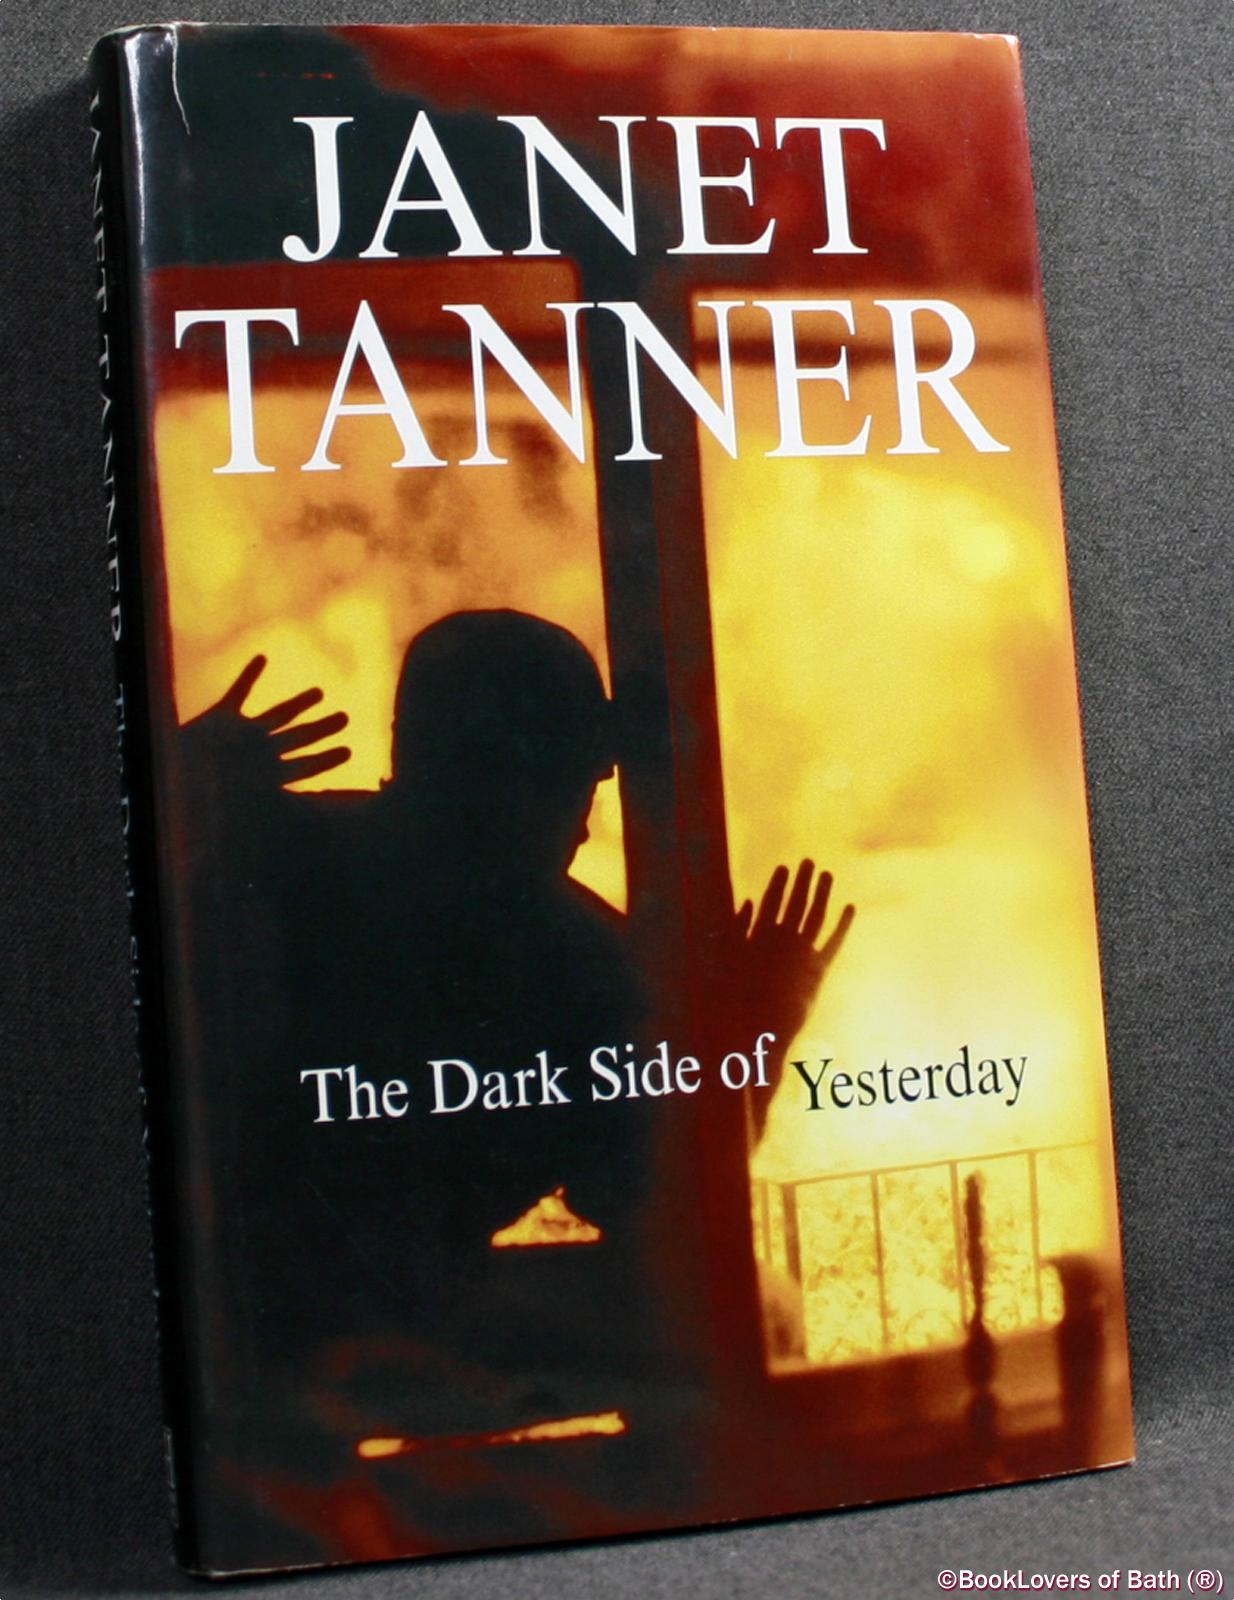 The Dark Side of Yesterday - Janet Tanner